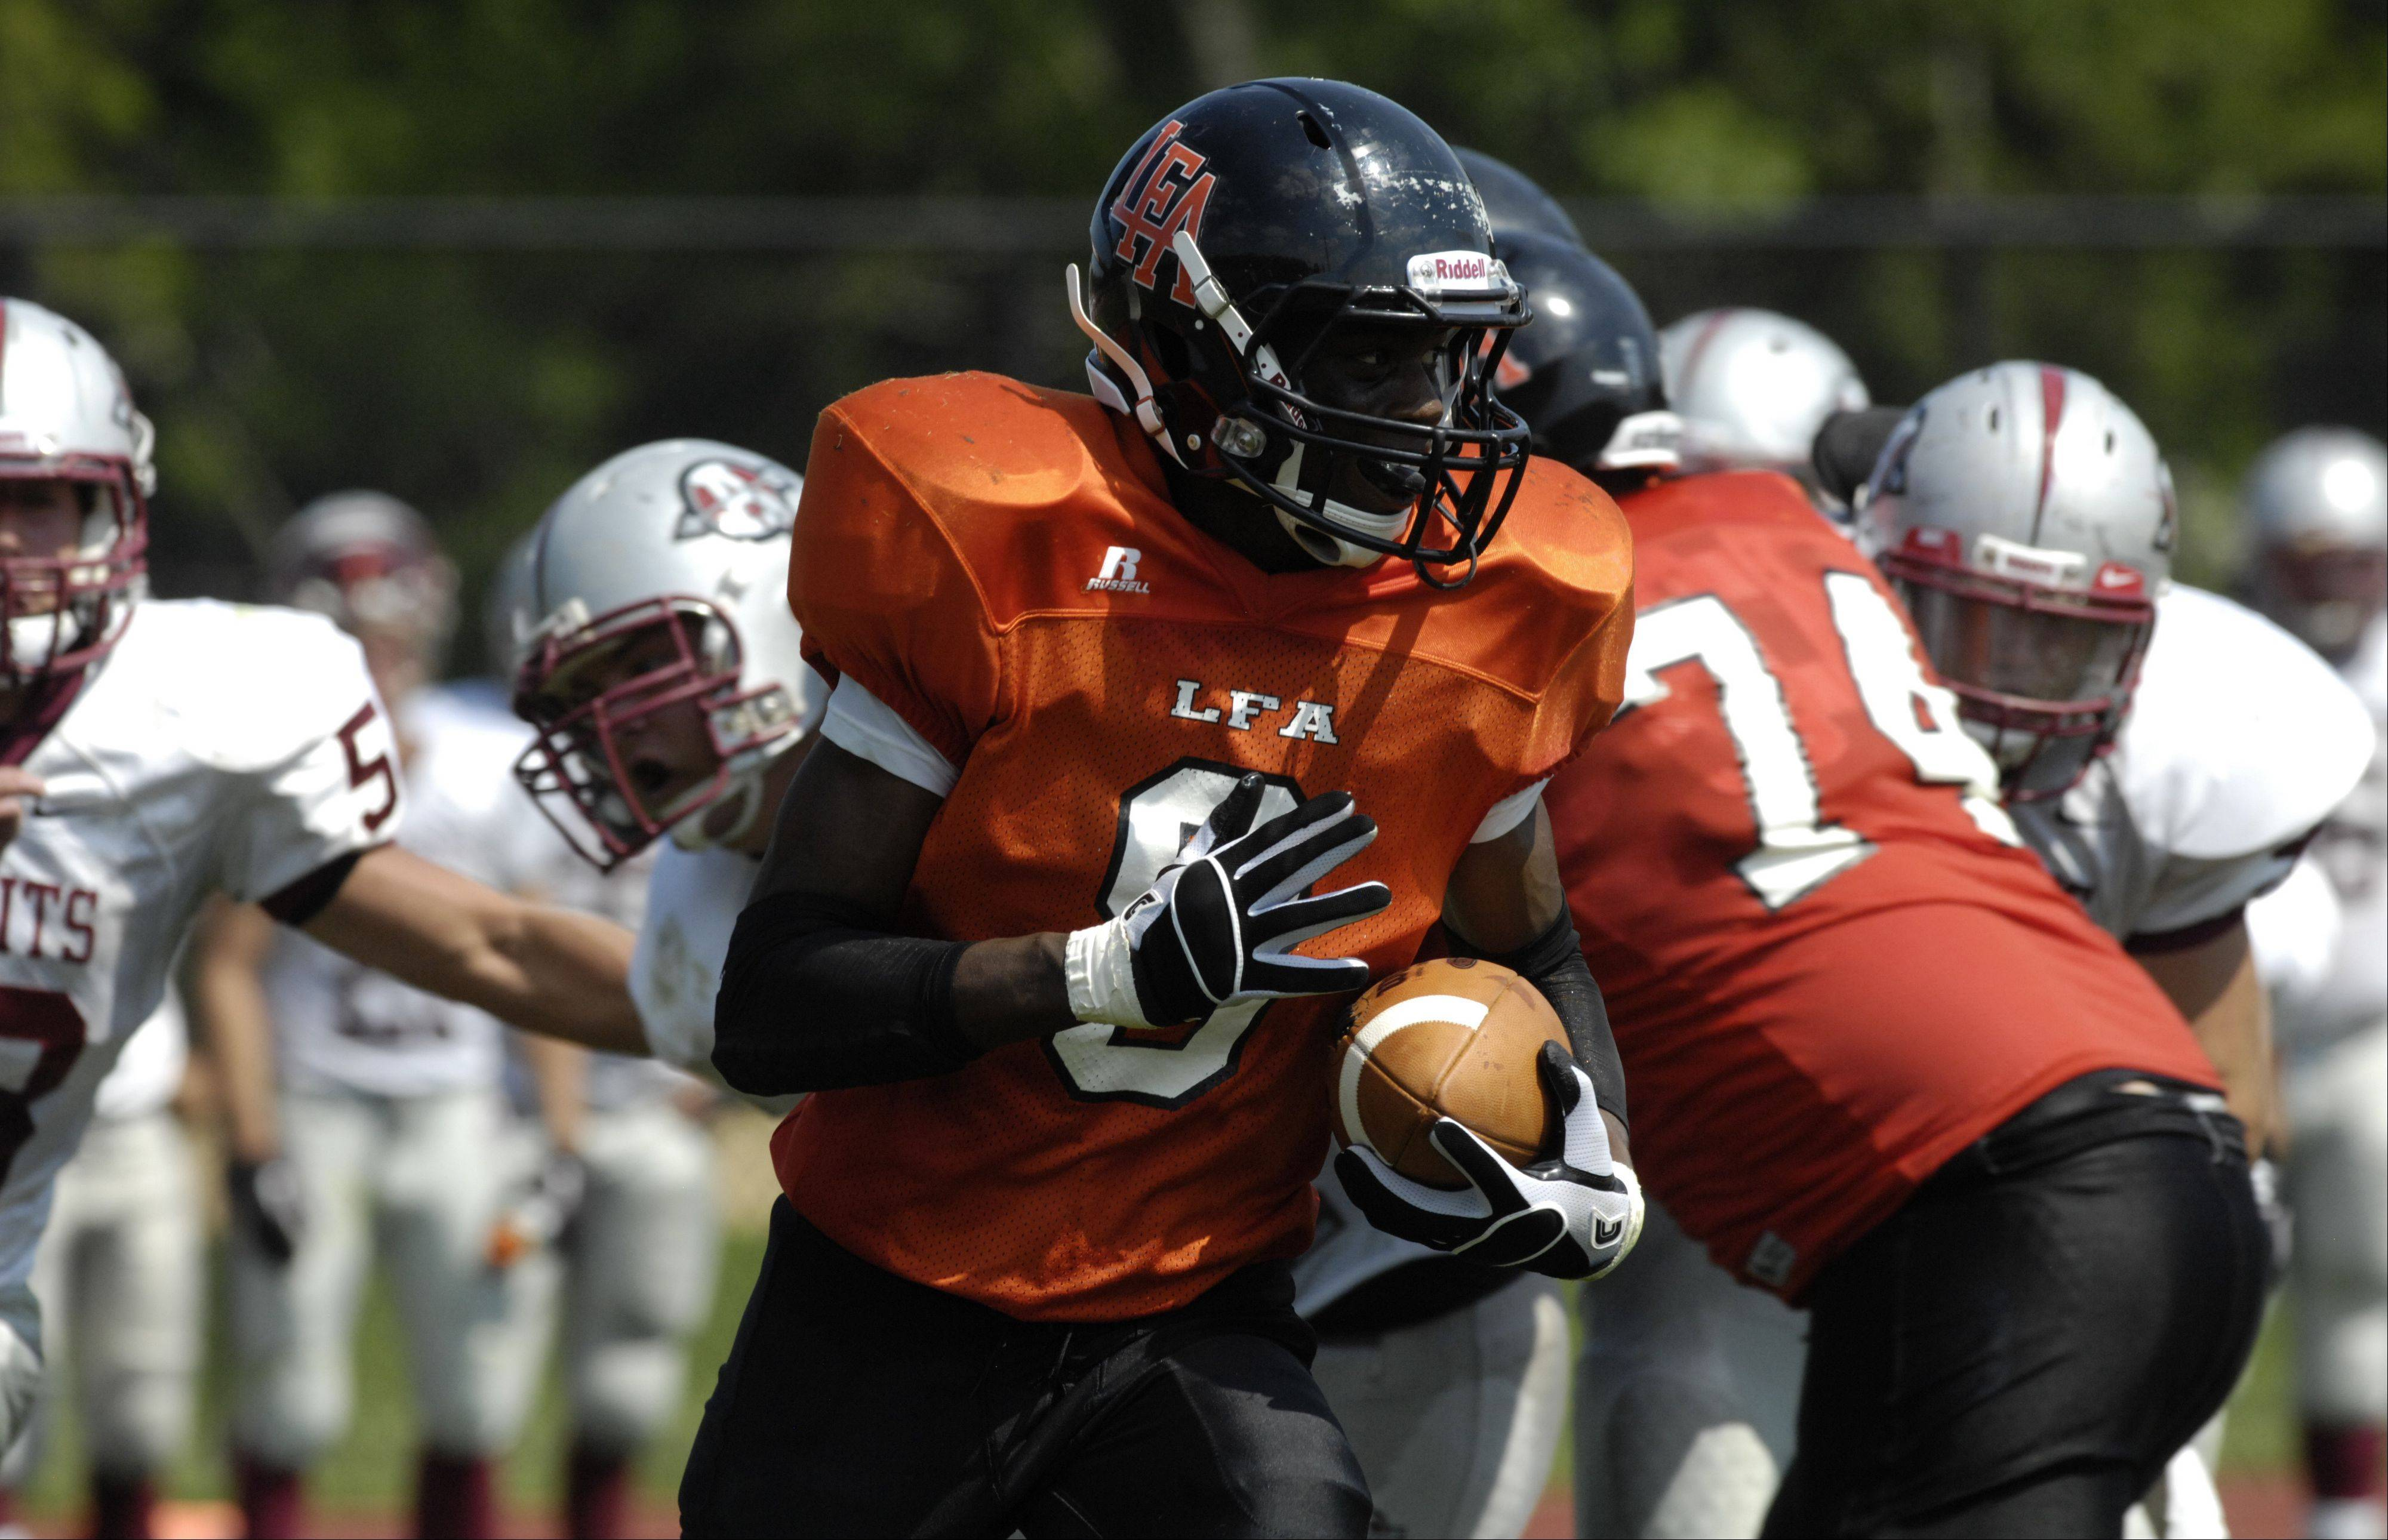 Week -1- Photos from the Antioch at Lake Forest Academy football game on Saturday, August 25.